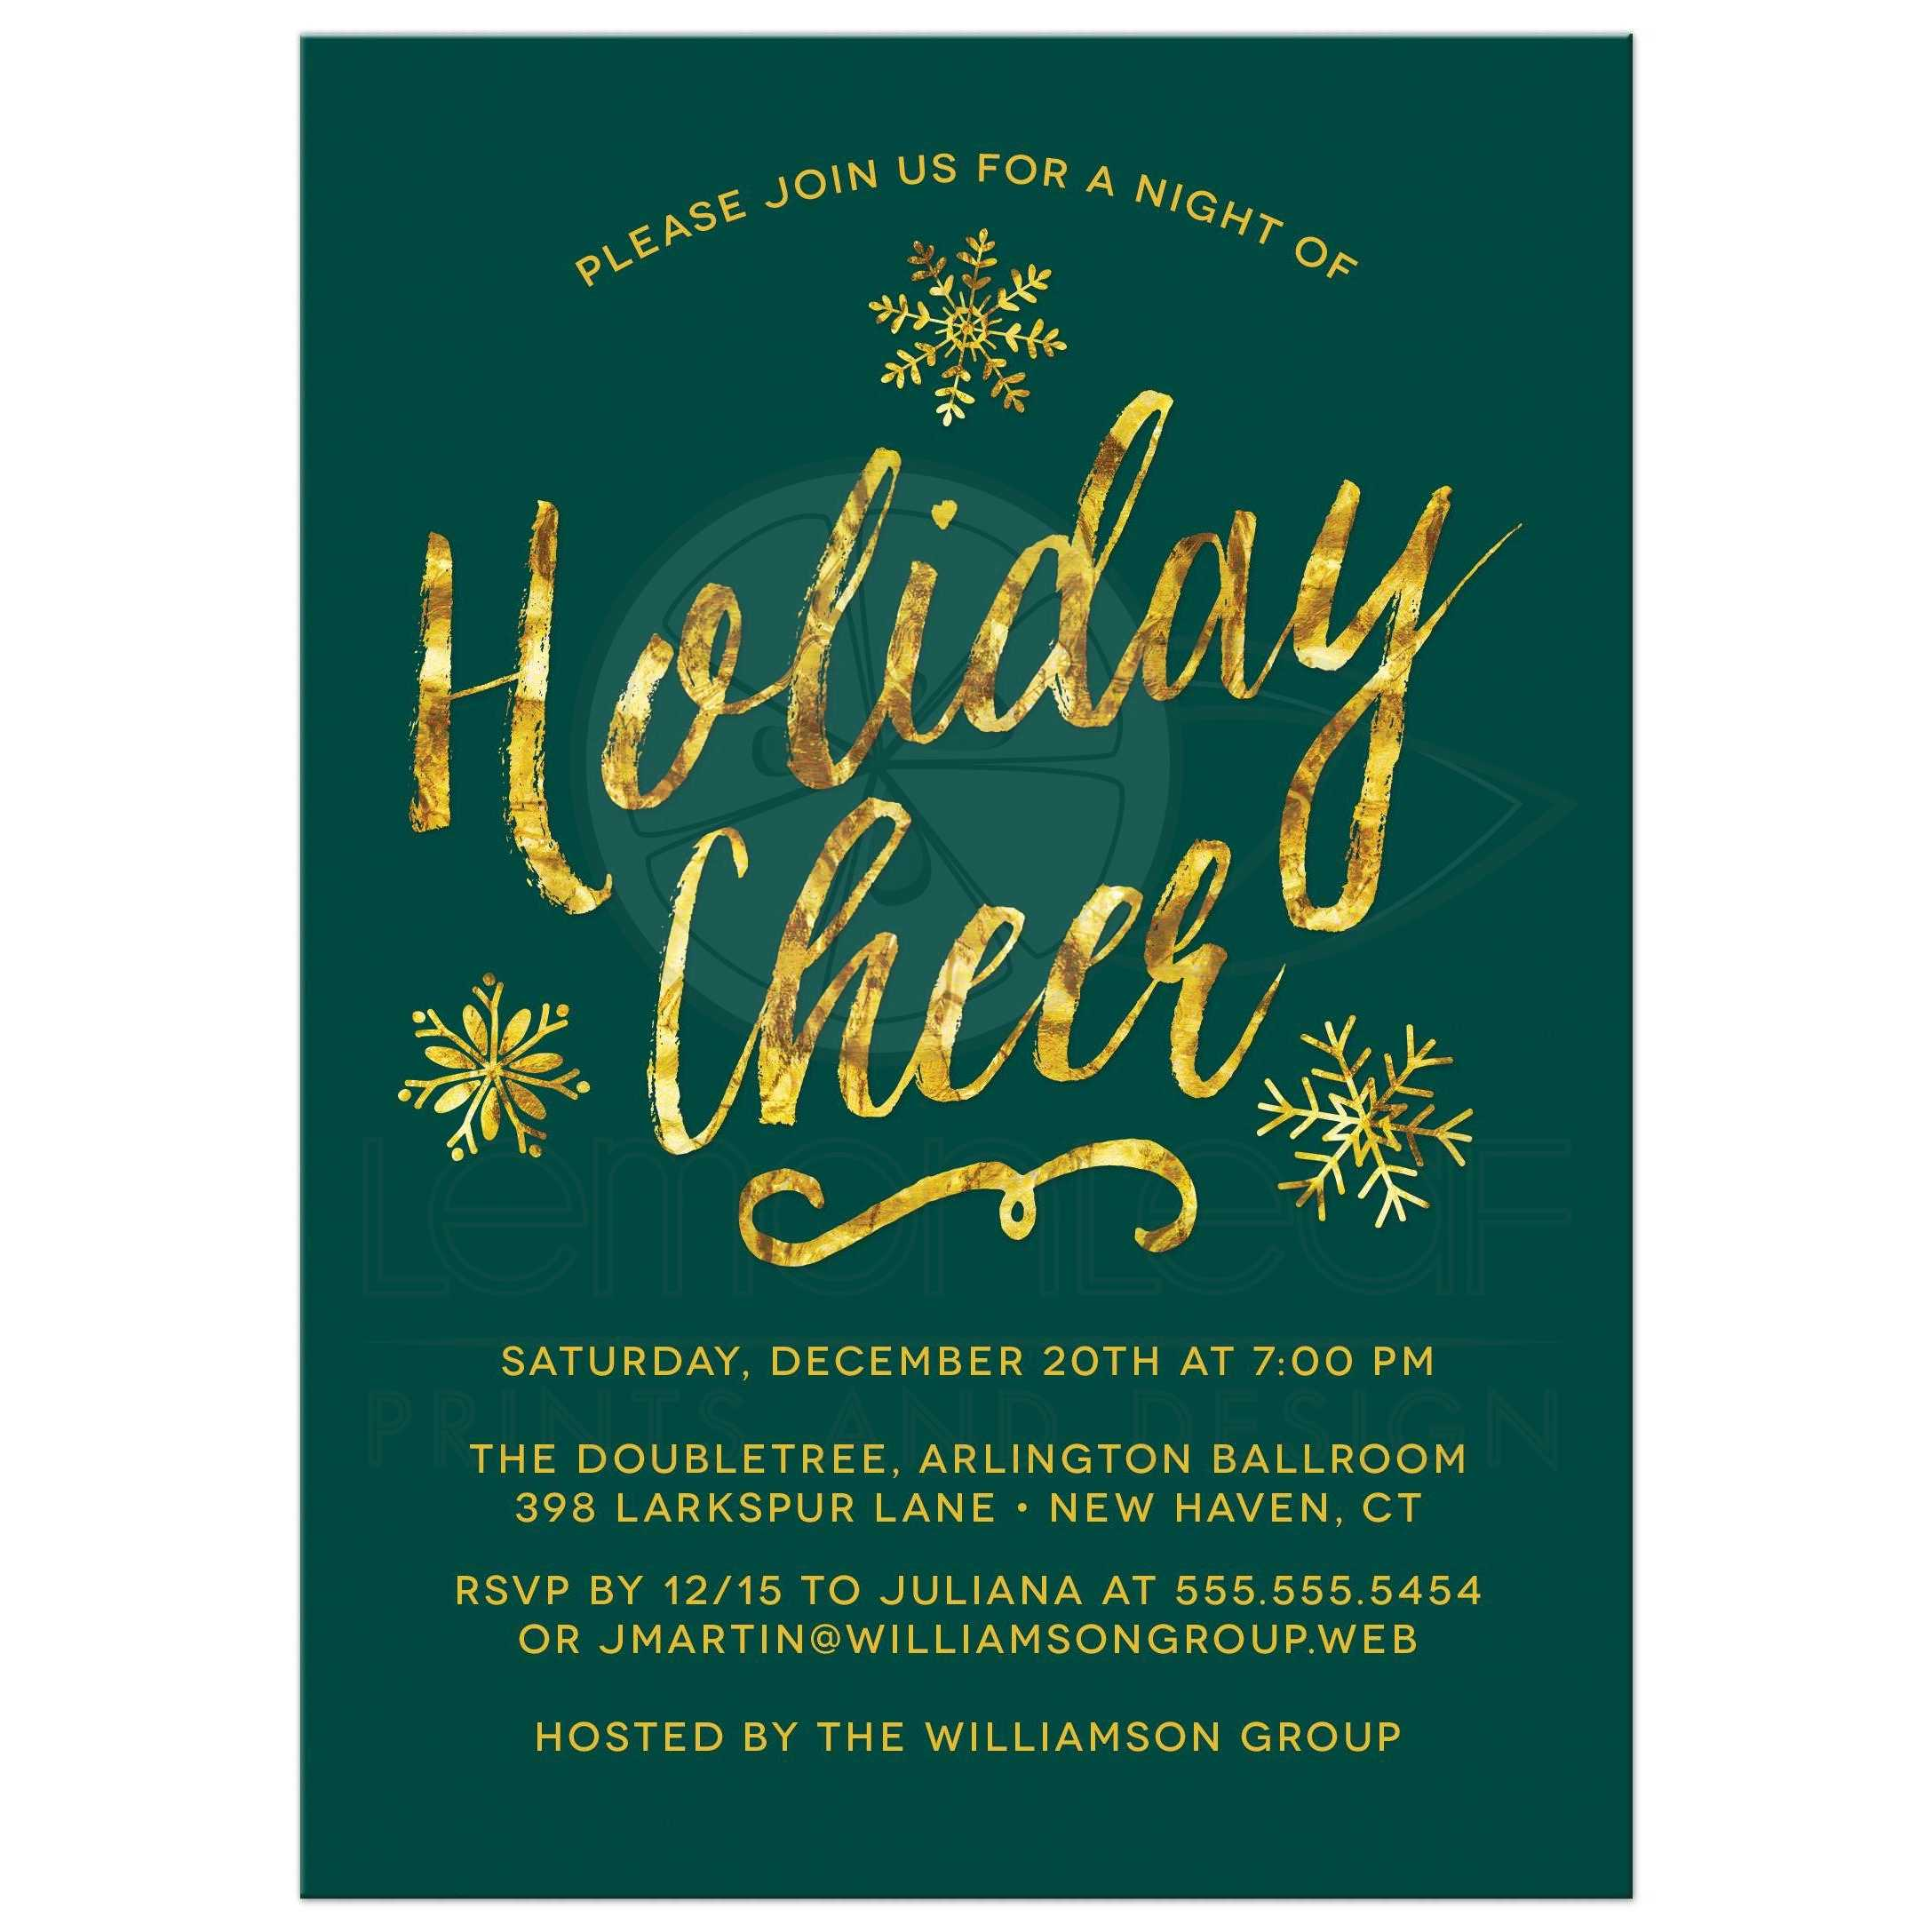 Corporate Holiday Party Invitations - Golden Holiday Cheer